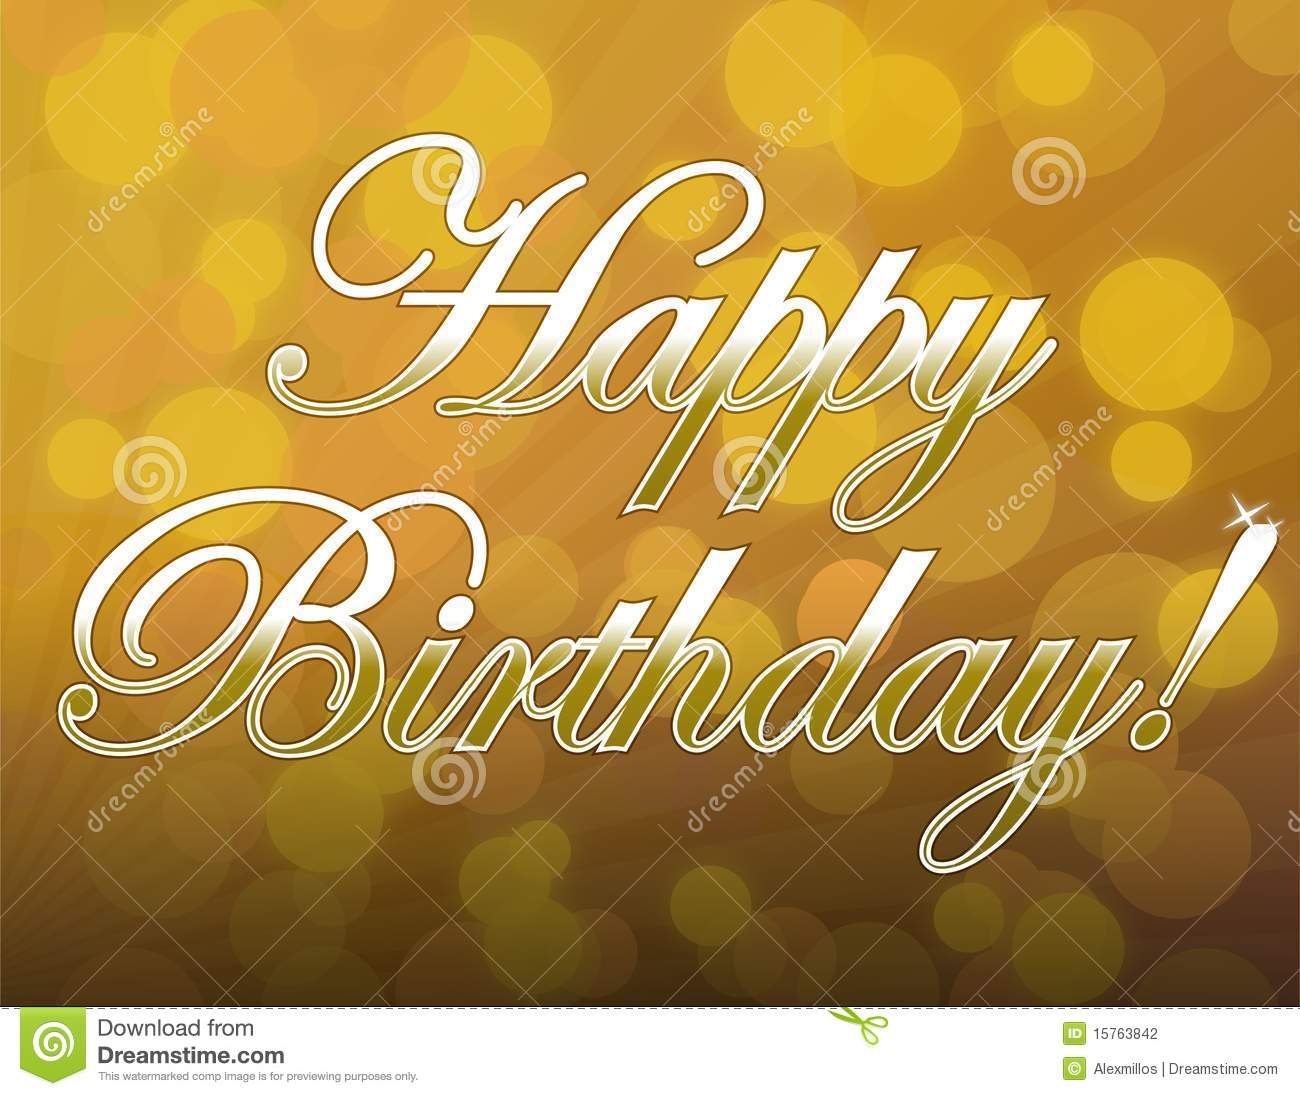 Image Result For Birthday Pics Free Download Beautiful Free Stock Photo Of Awesome Birthday Hd Images Happy Birthday